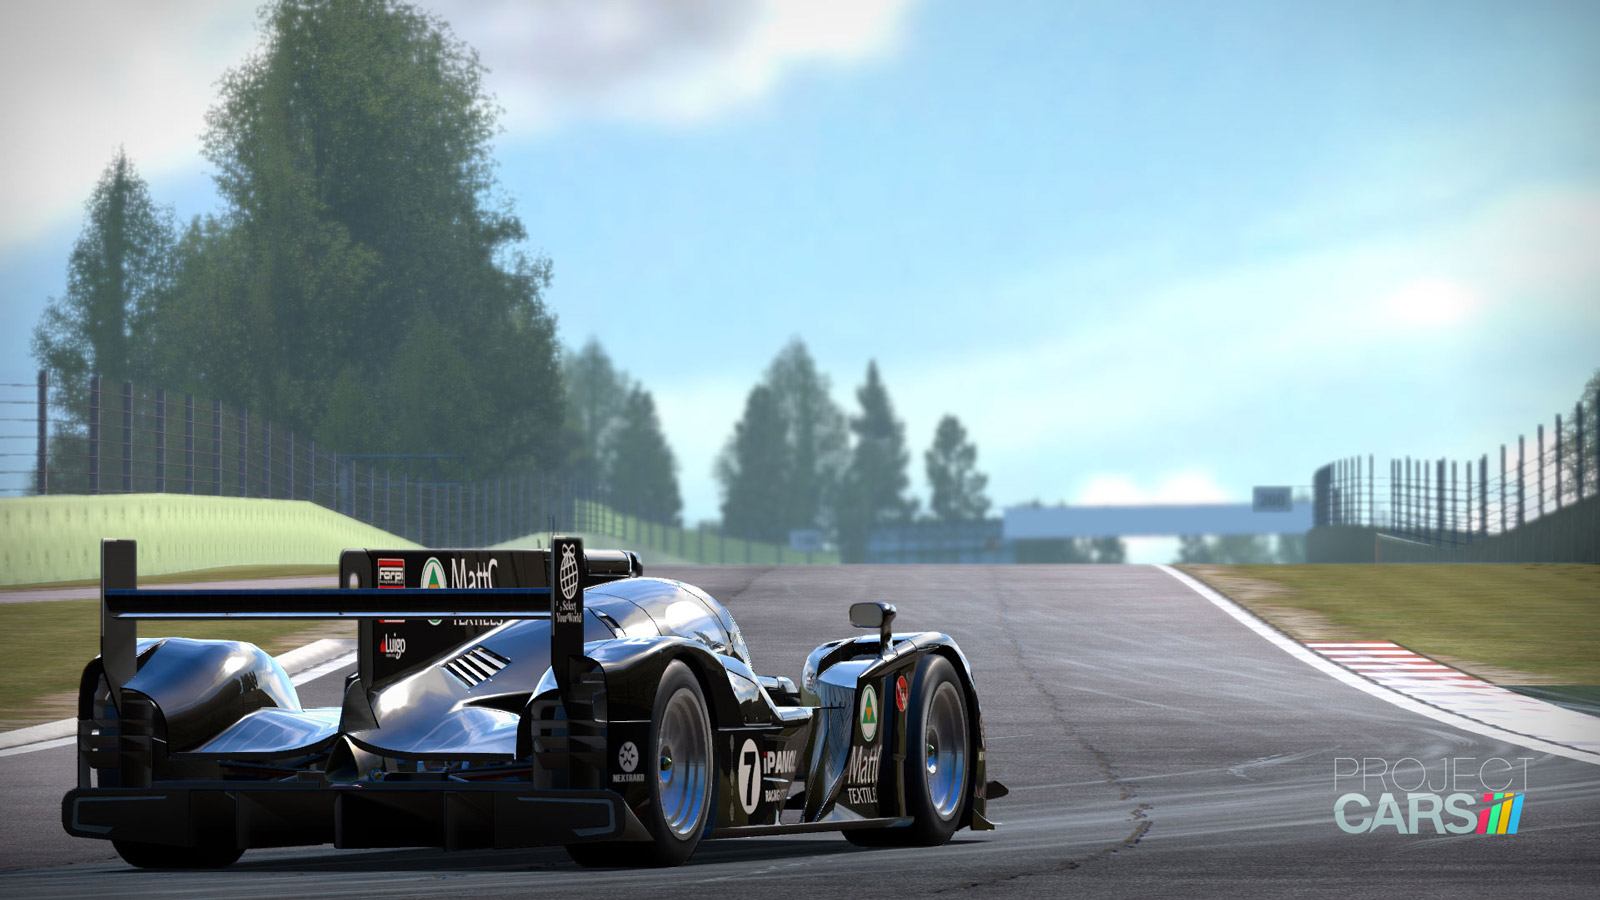 Free Project Cars Wallpaper in 1600x900